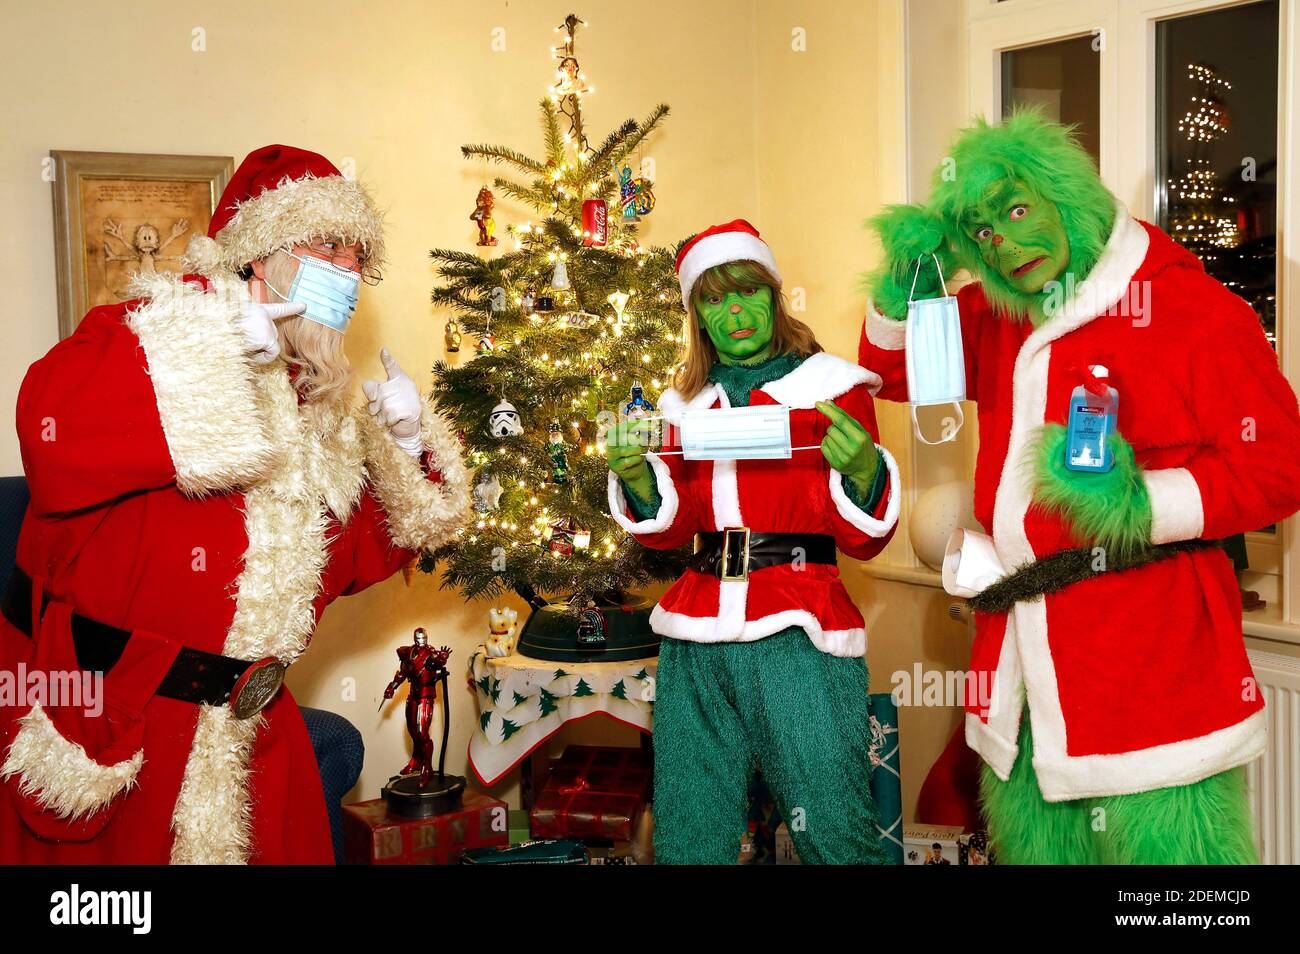 Santa Claus tries to explain to the Grinch and Mrs. Grinch how to wear a protective mask. GEEK ART - Bodypainting and Transformaking: 'The Grinch steals Christmas' photoshooting with Enrico Lein as Grinch, Maria Skupin as Mrs. Grinch and Fabian Zesiger as Santa Claus at the Villa Czarnecki. in Hameln on November 30, 2020 - A project by the photographer Tschiponnique Skupin and the bodypainter Enrico Lein Stock Photo